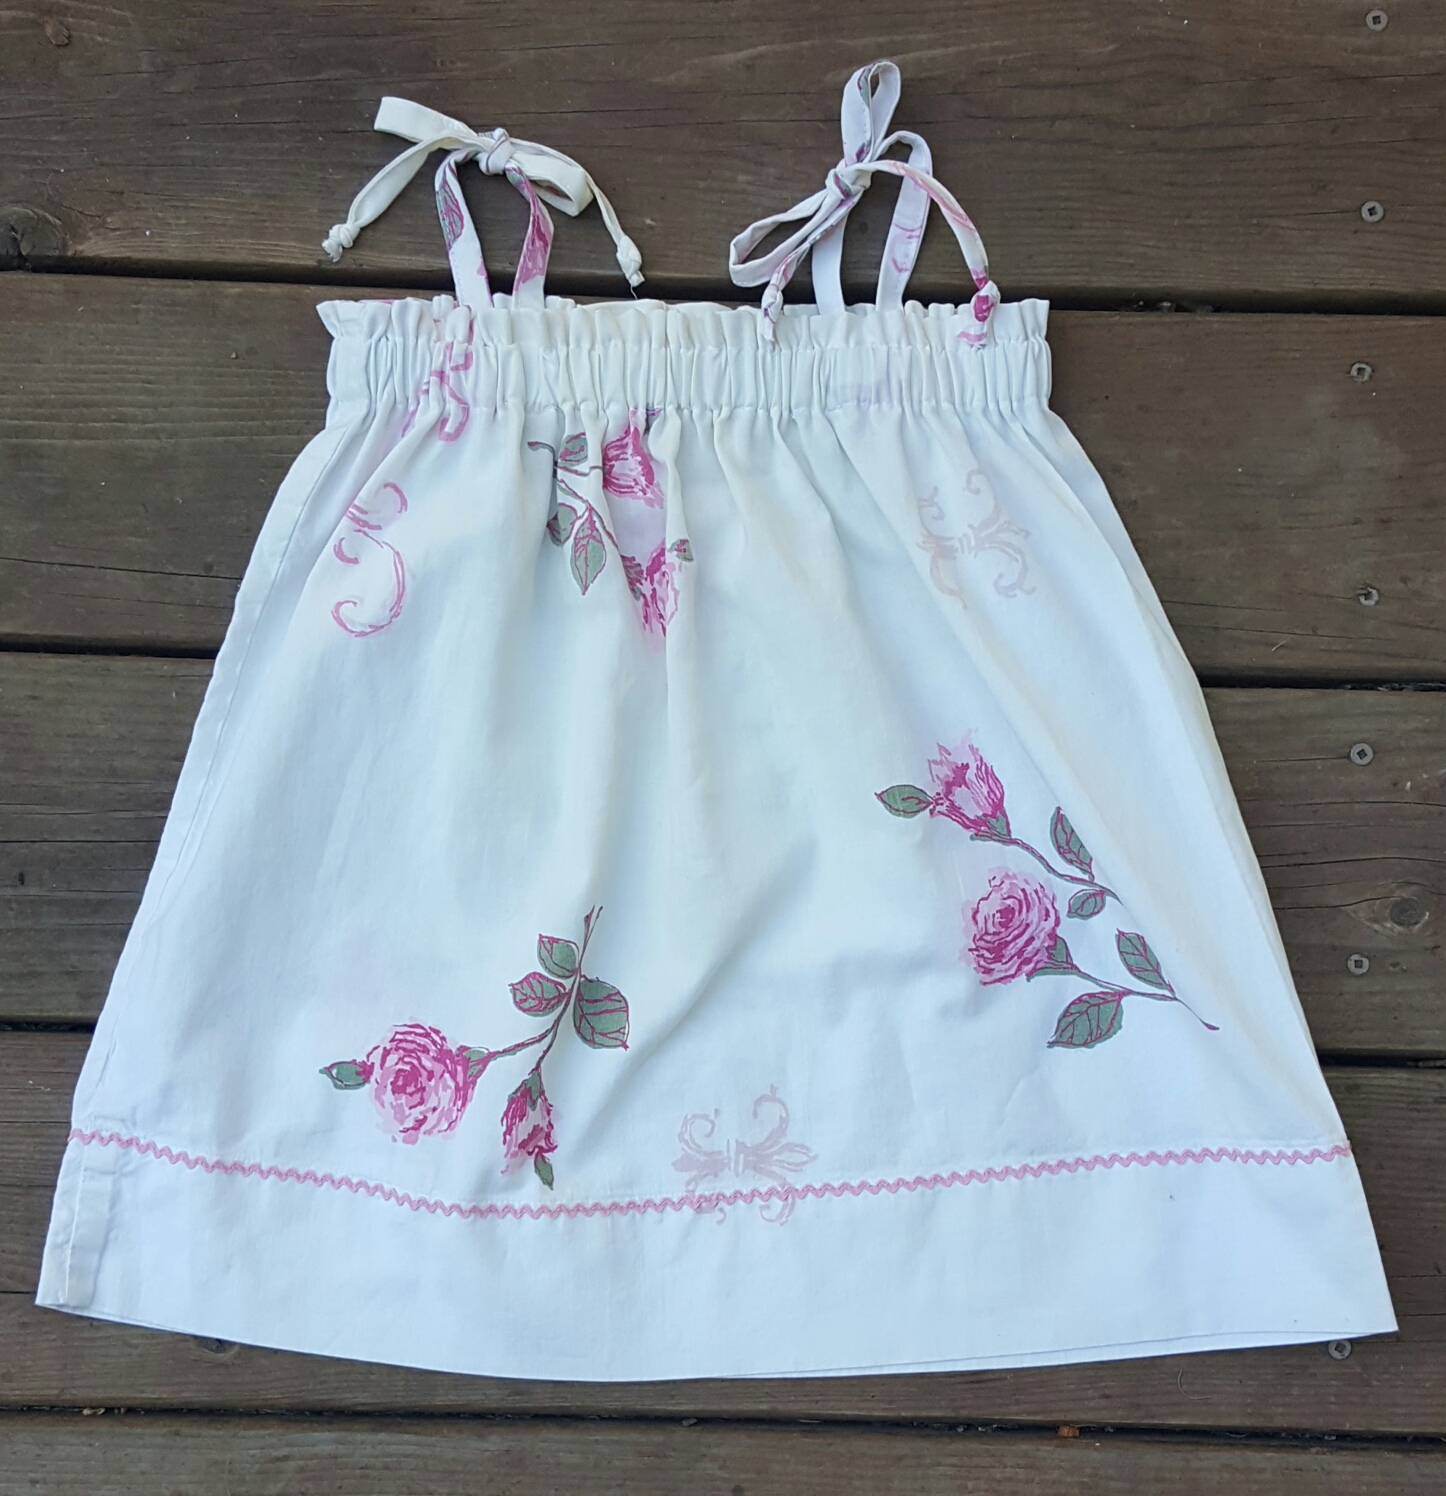 finished toddler pillowcase sundress